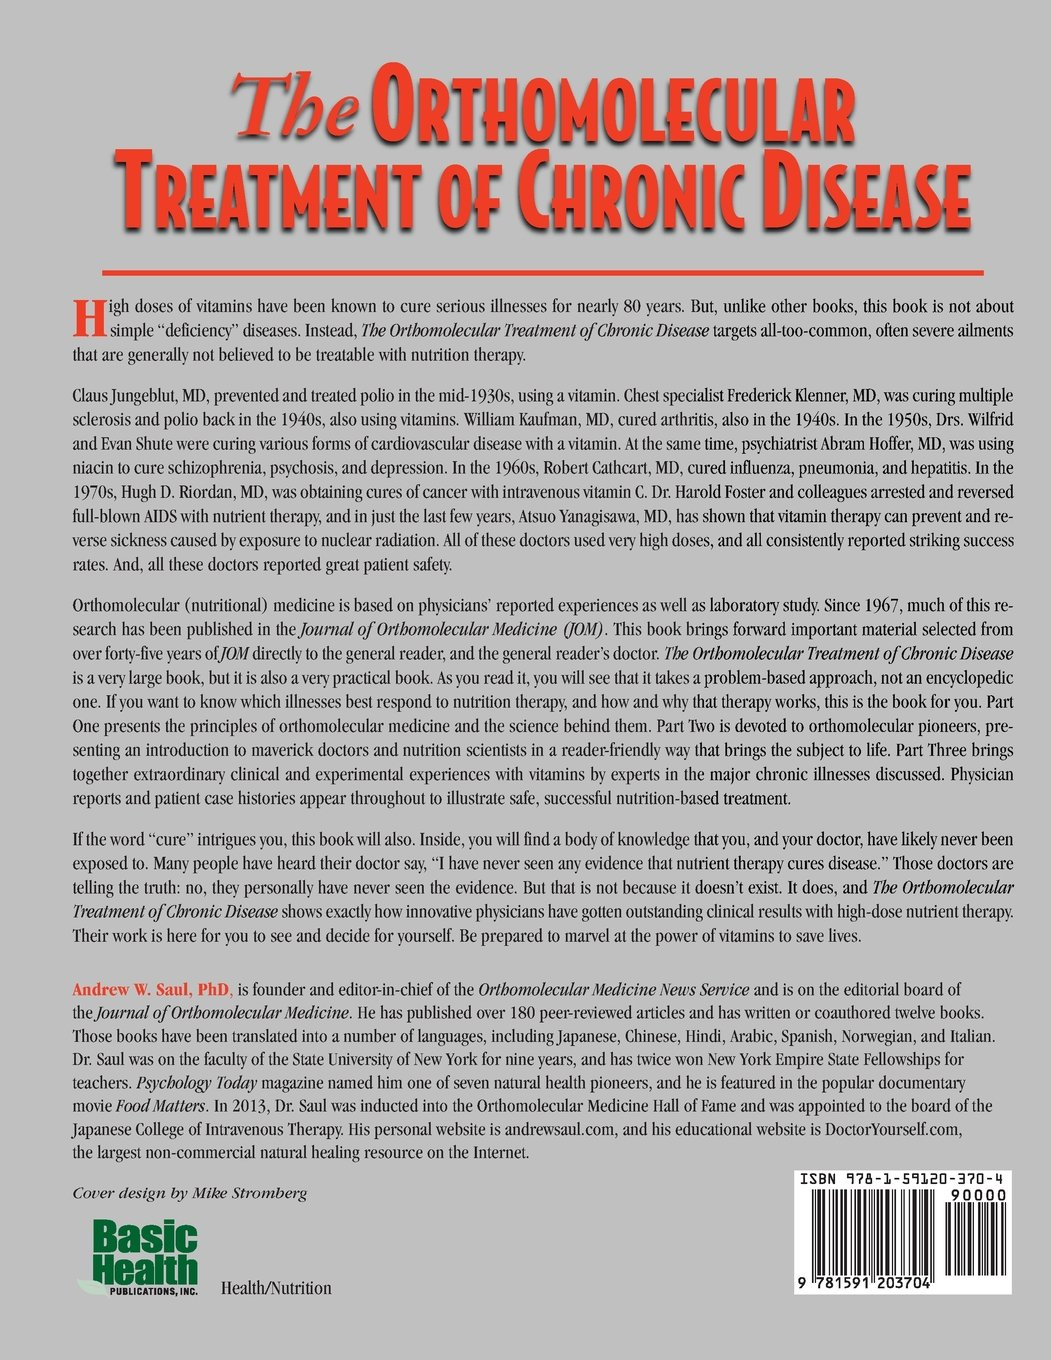 Orthomolecular Treatment Of Chronic Disease: 65 Experts On Therapeutic And  Preventive Nutrition: Andrew W Saul Phd, Robert Cathcart, Allan Cott,